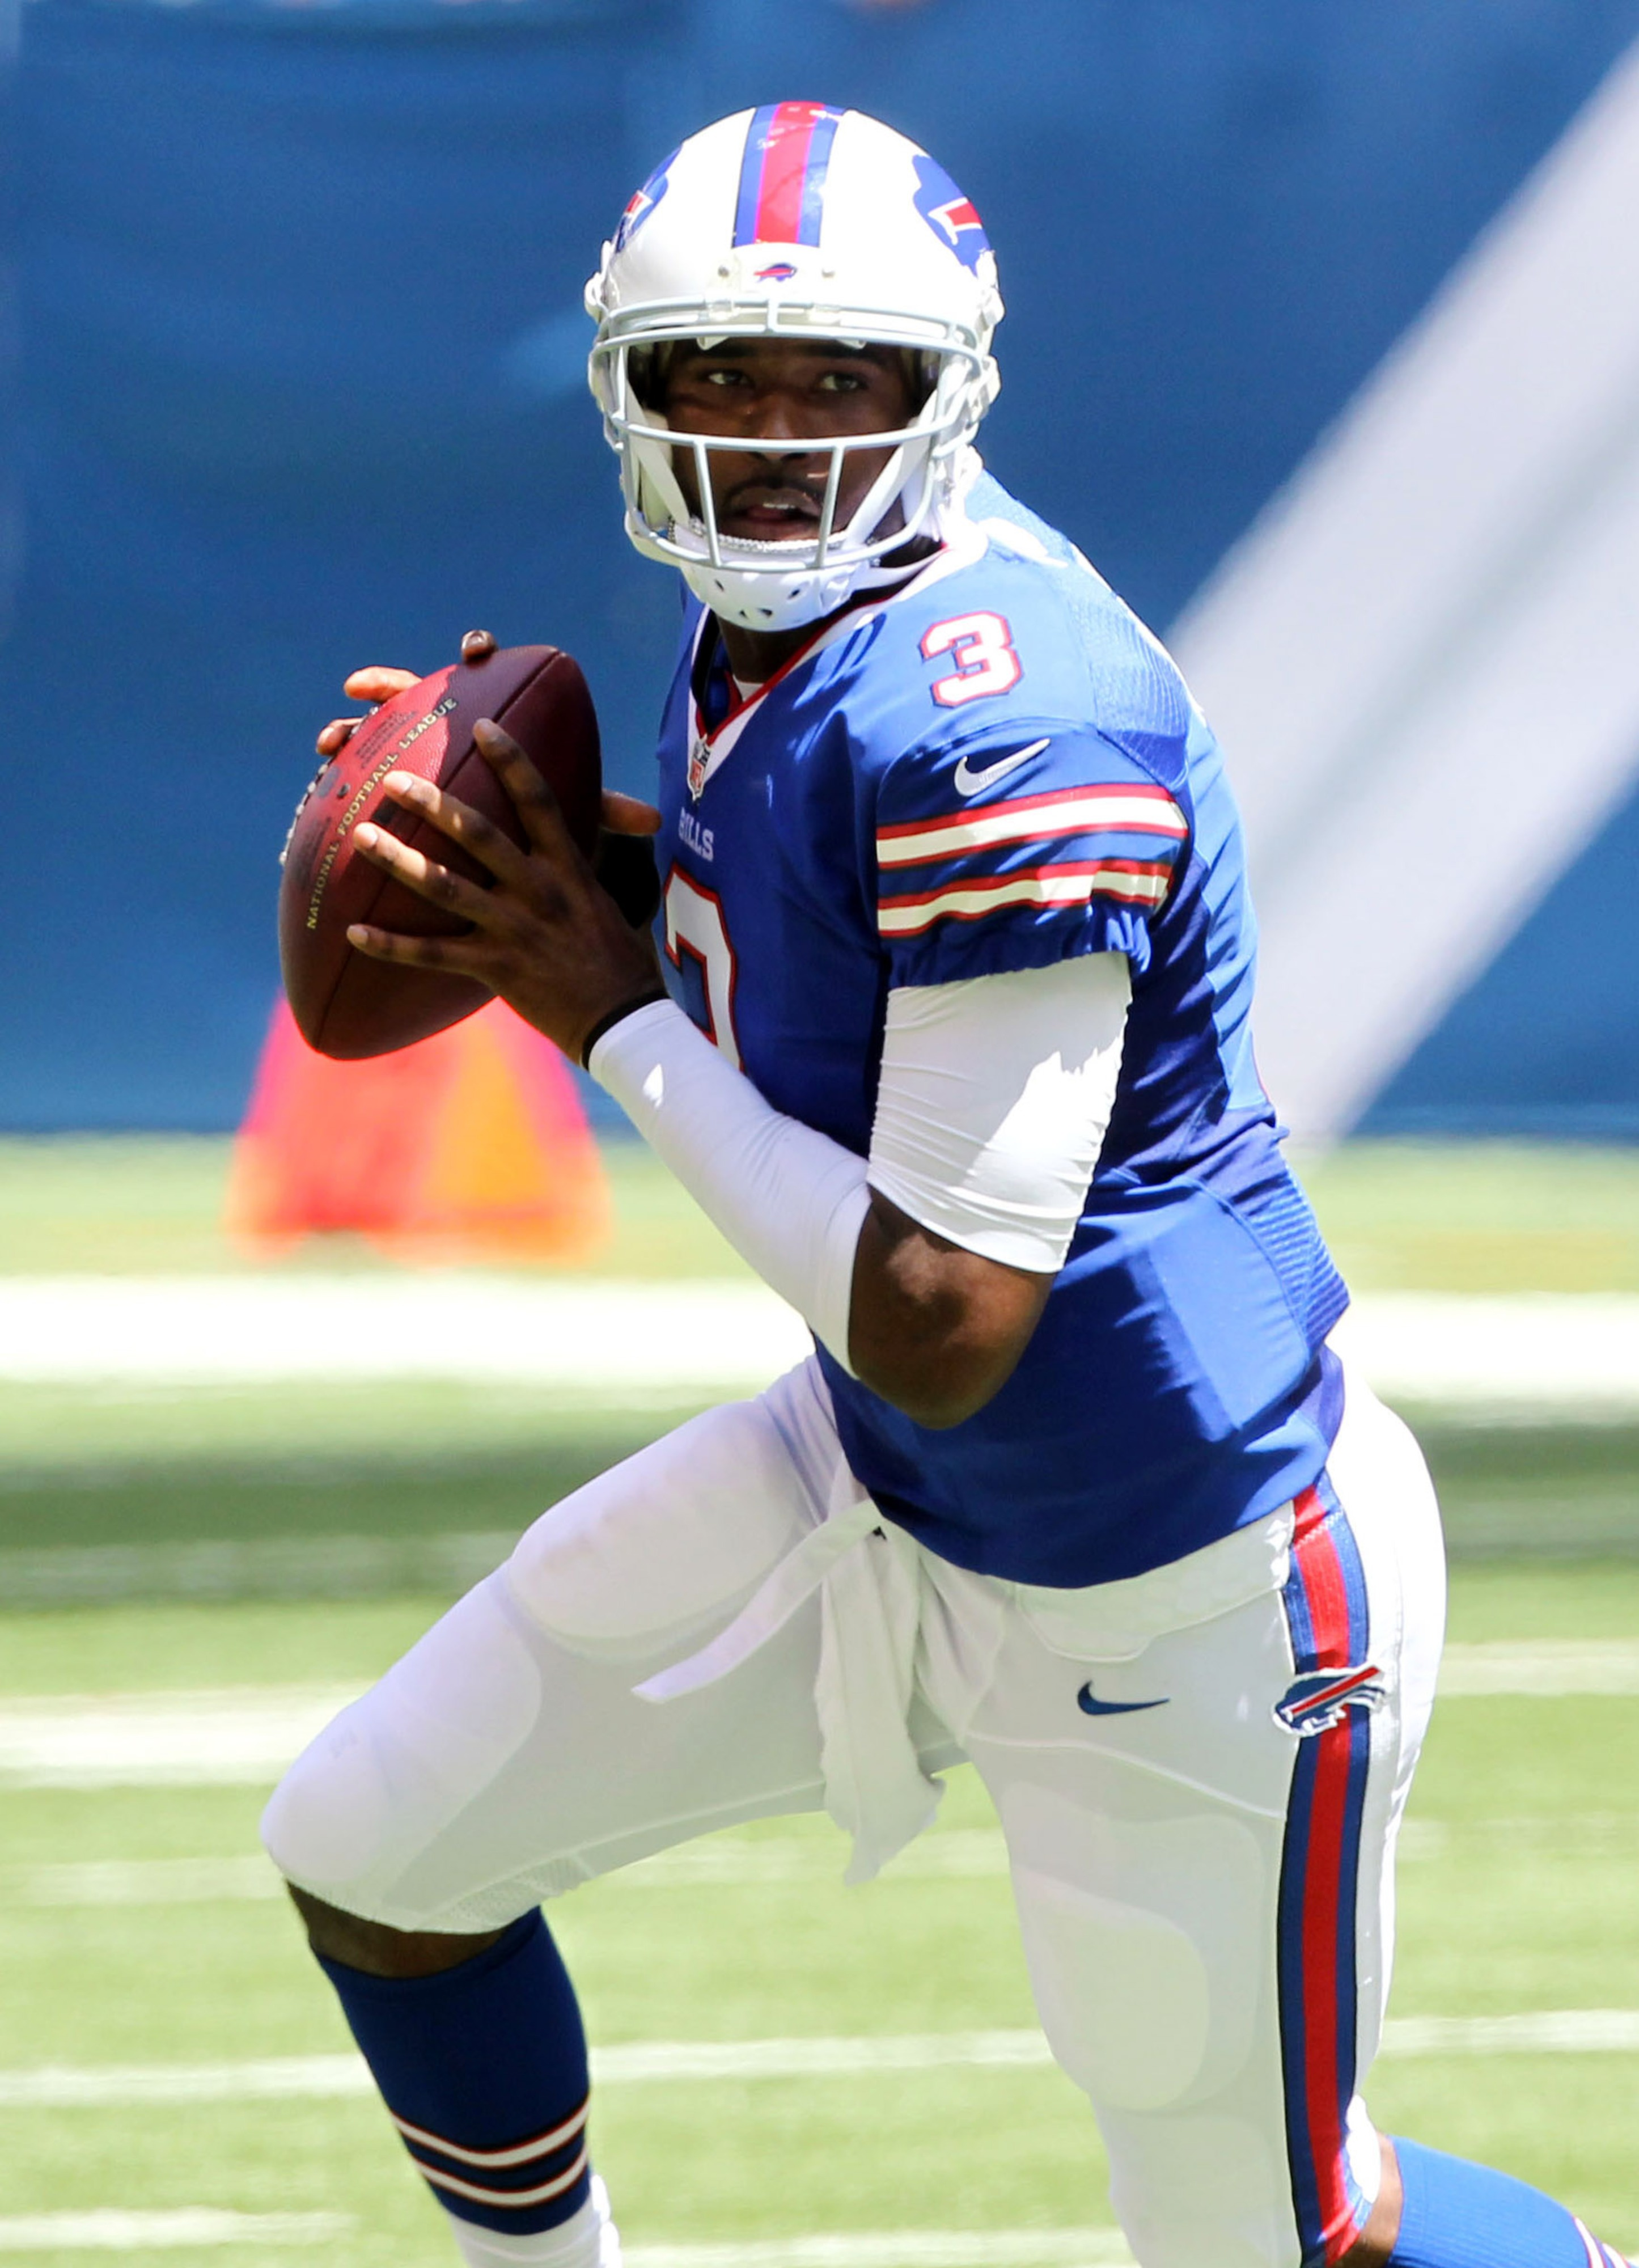 Buffalo Bills Fantasy Football Preview: Spiller? I hardly know why not - SBNation.com